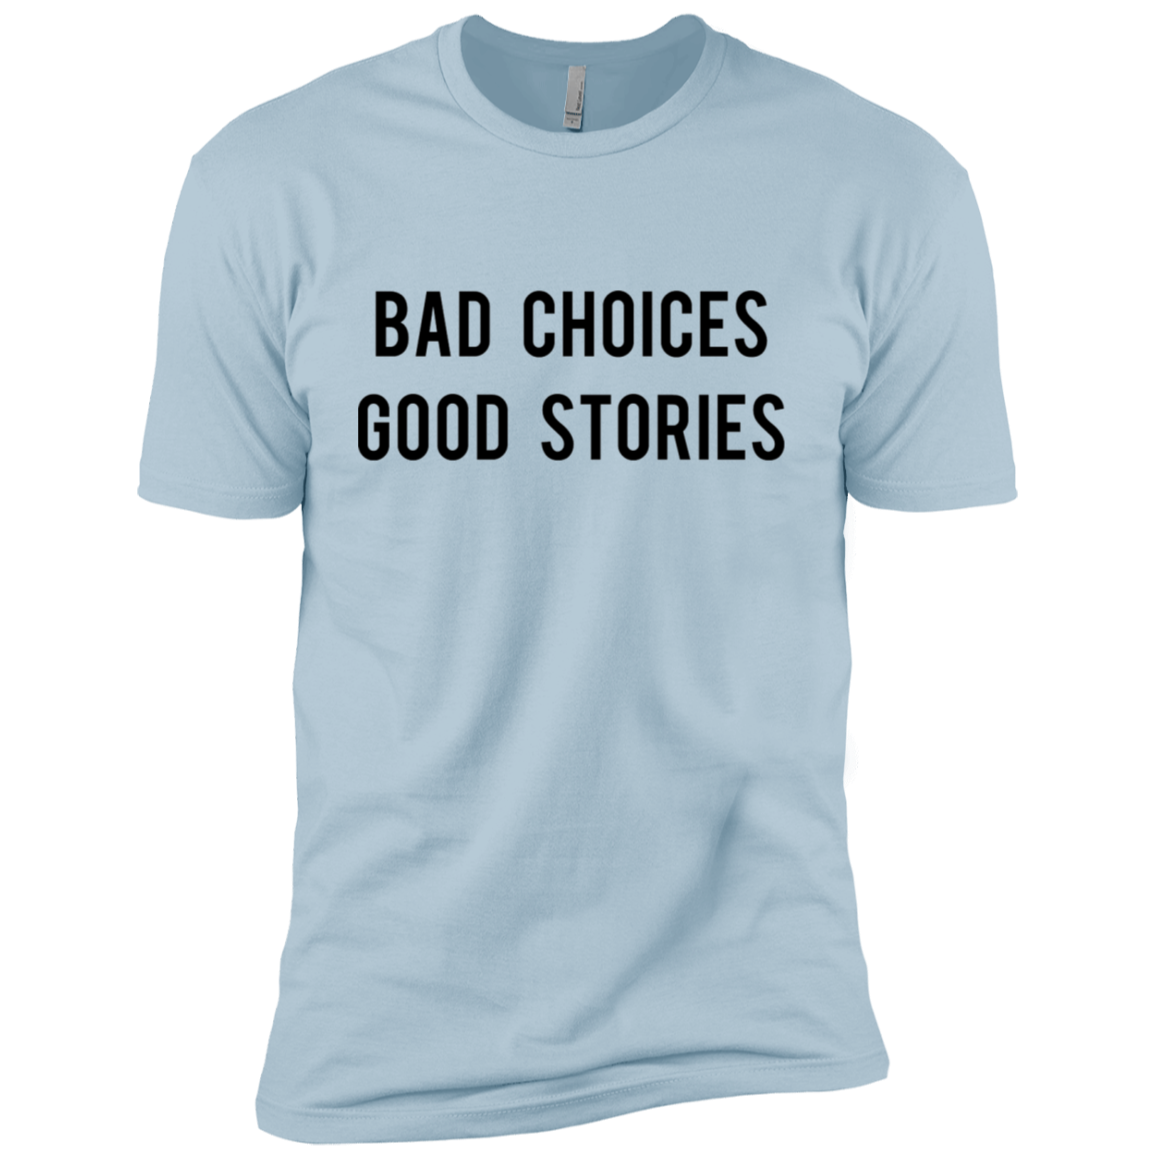 Bad Choices Good Stories Men's Classic Tee - Trendy Tees